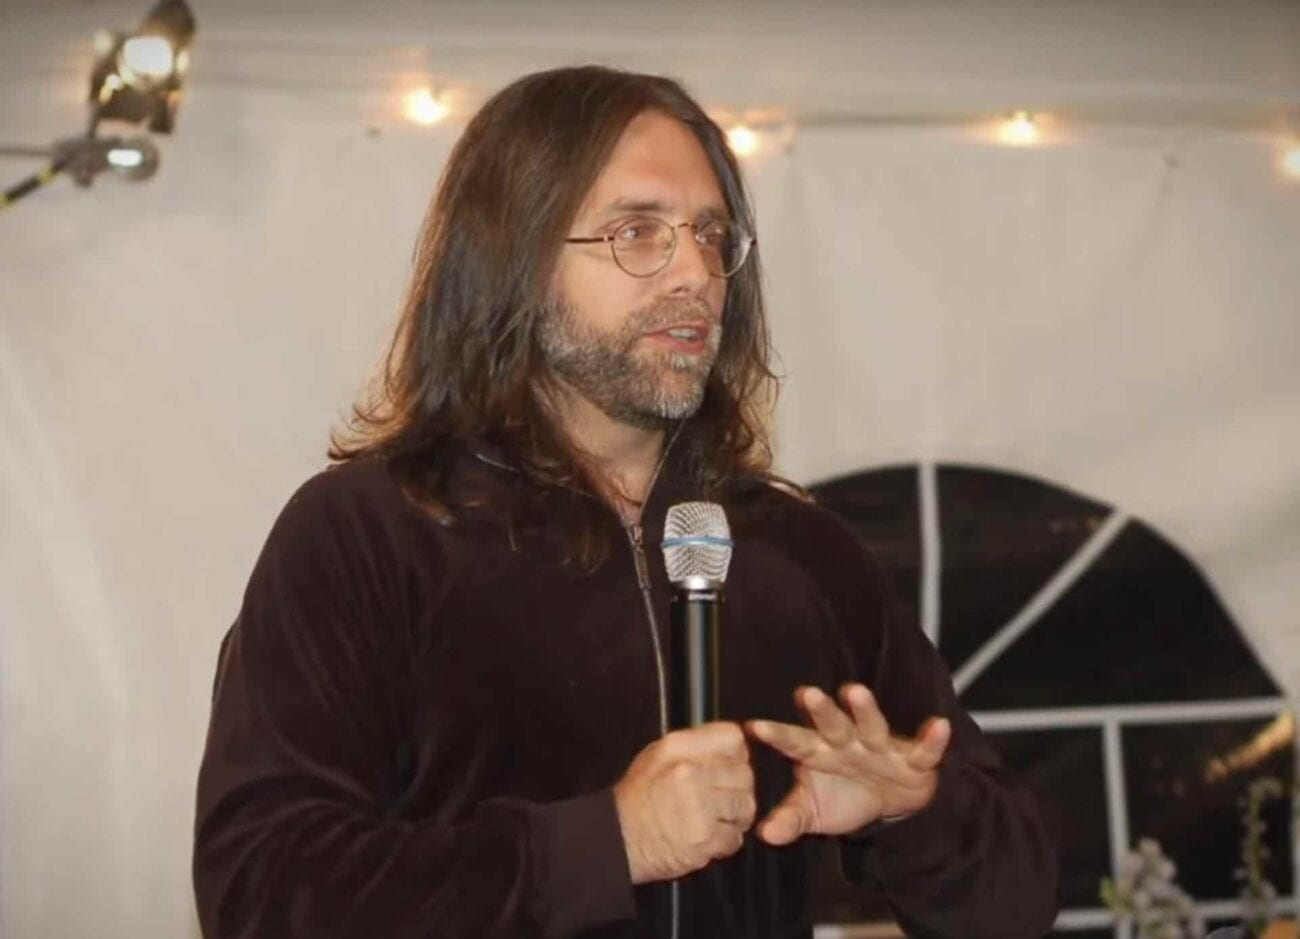 How the hell did Keith Raniere end up with charges of sex trafficking, conspiracy, and basically live his life as a cult leader? Here's what we know.